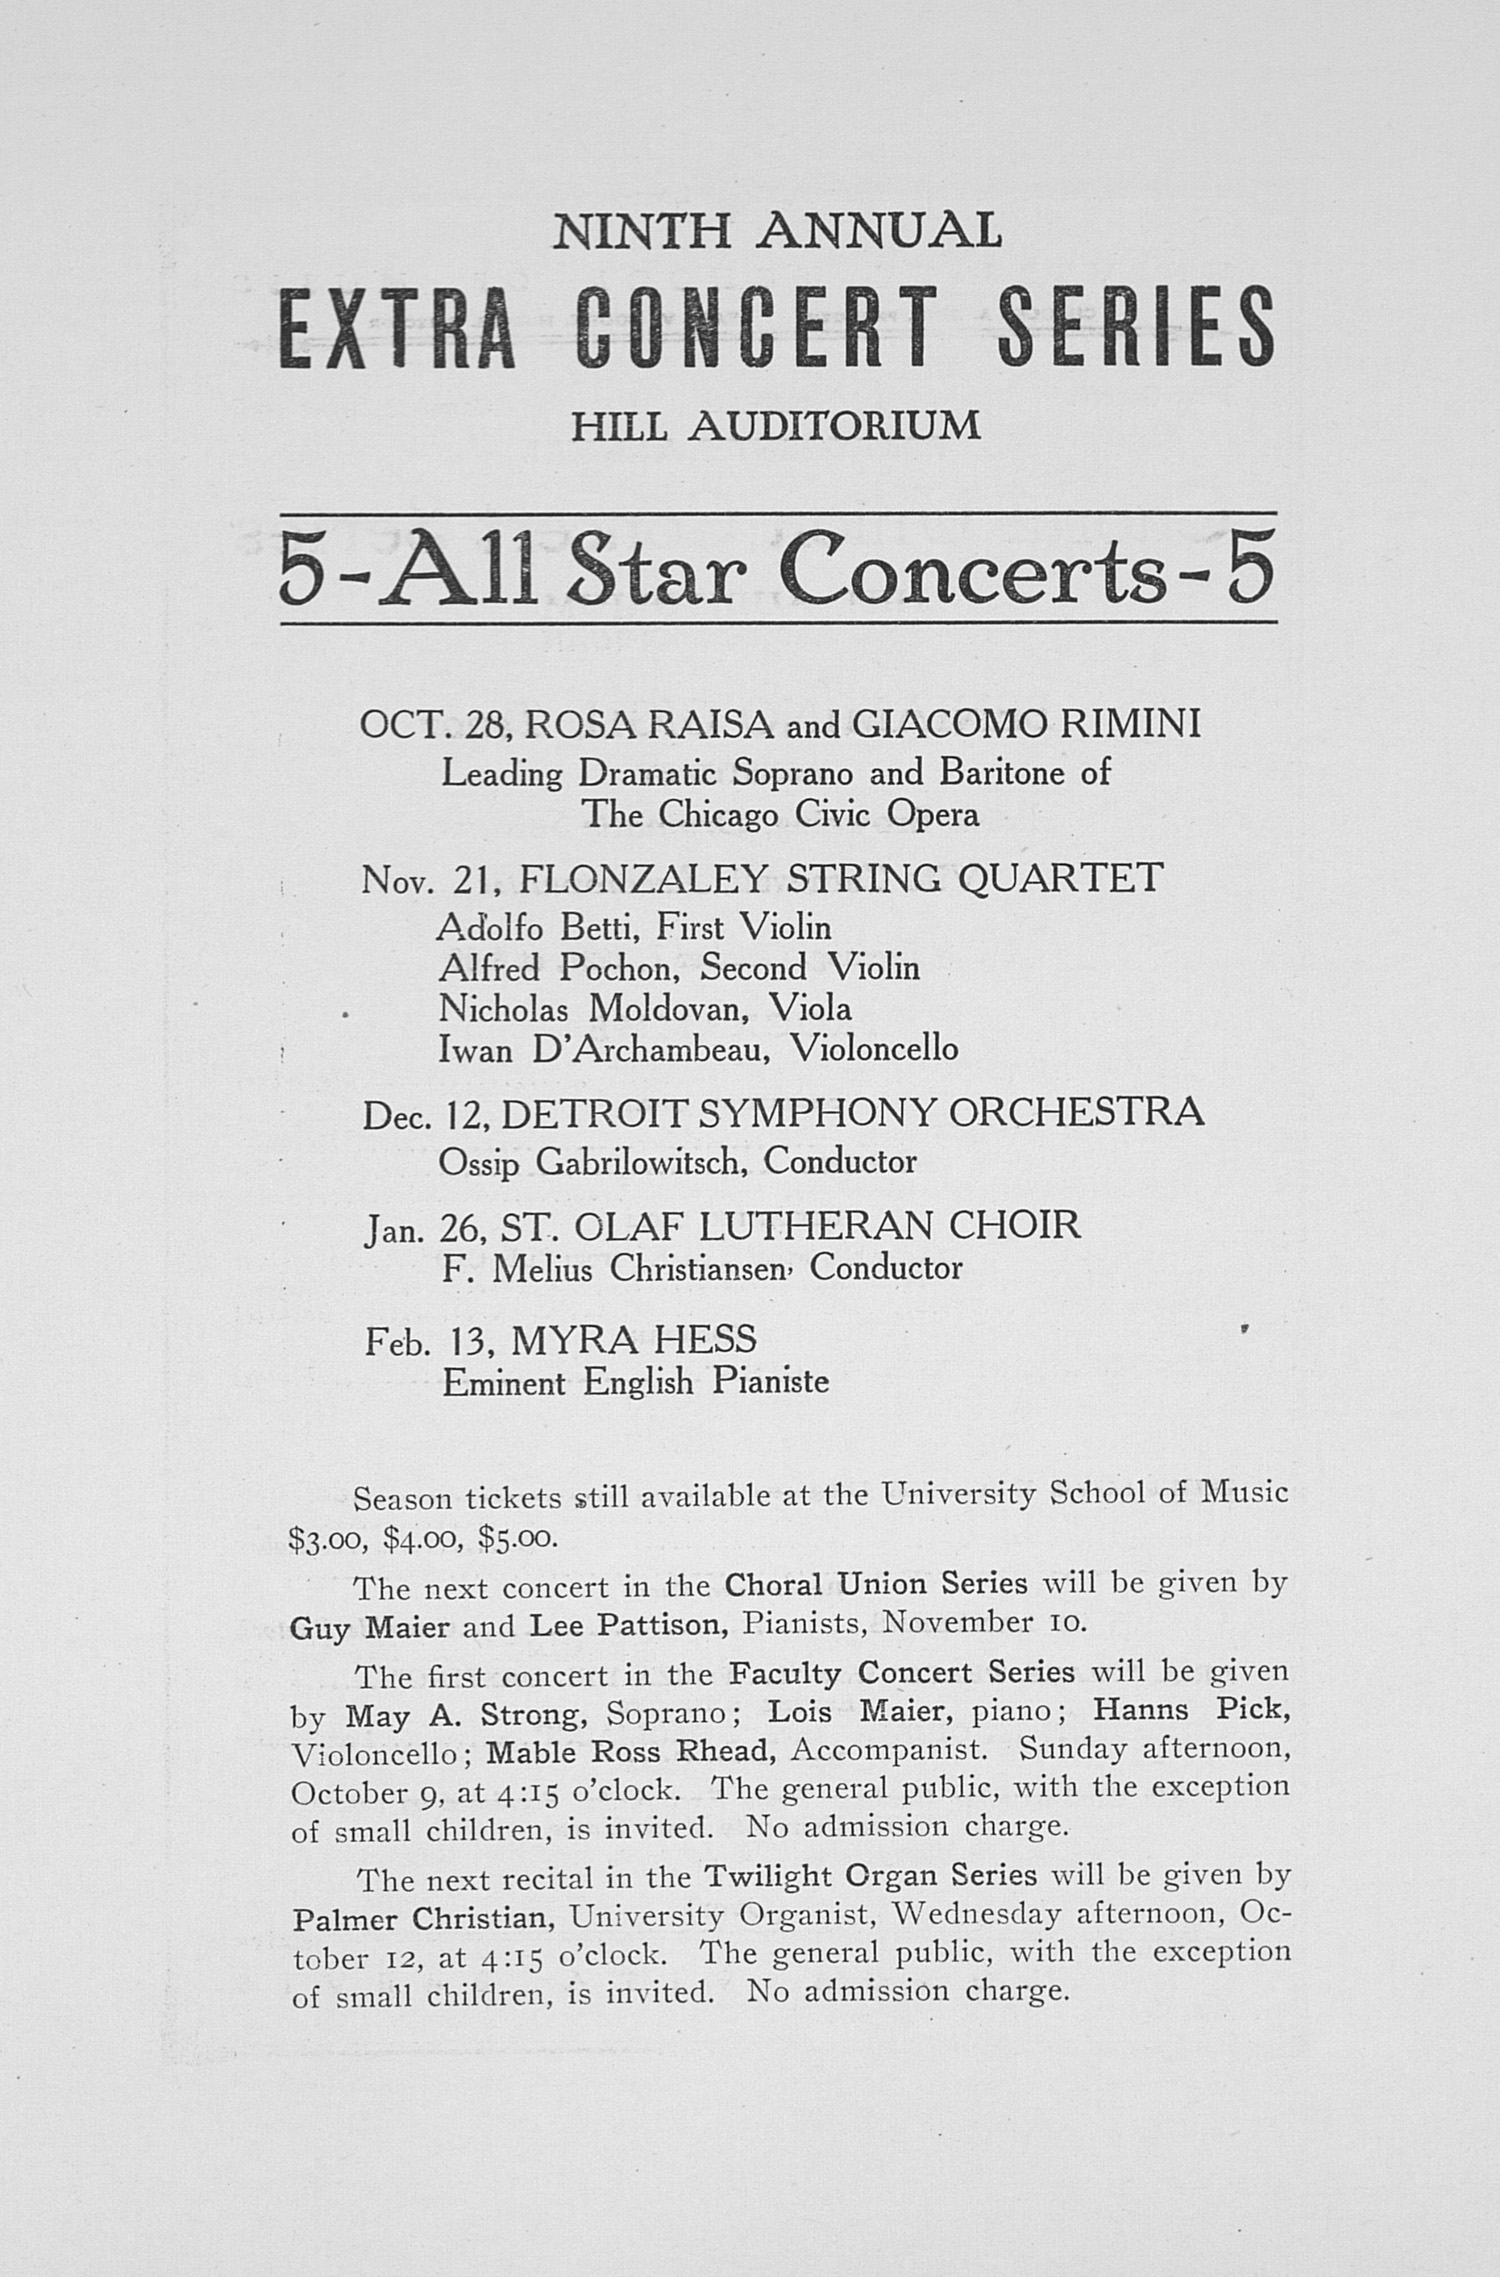 UMS Concert Program, October 7, 1927: Forty-ninth Annual Choral Union Concert Series -- Beniamino Gigli image